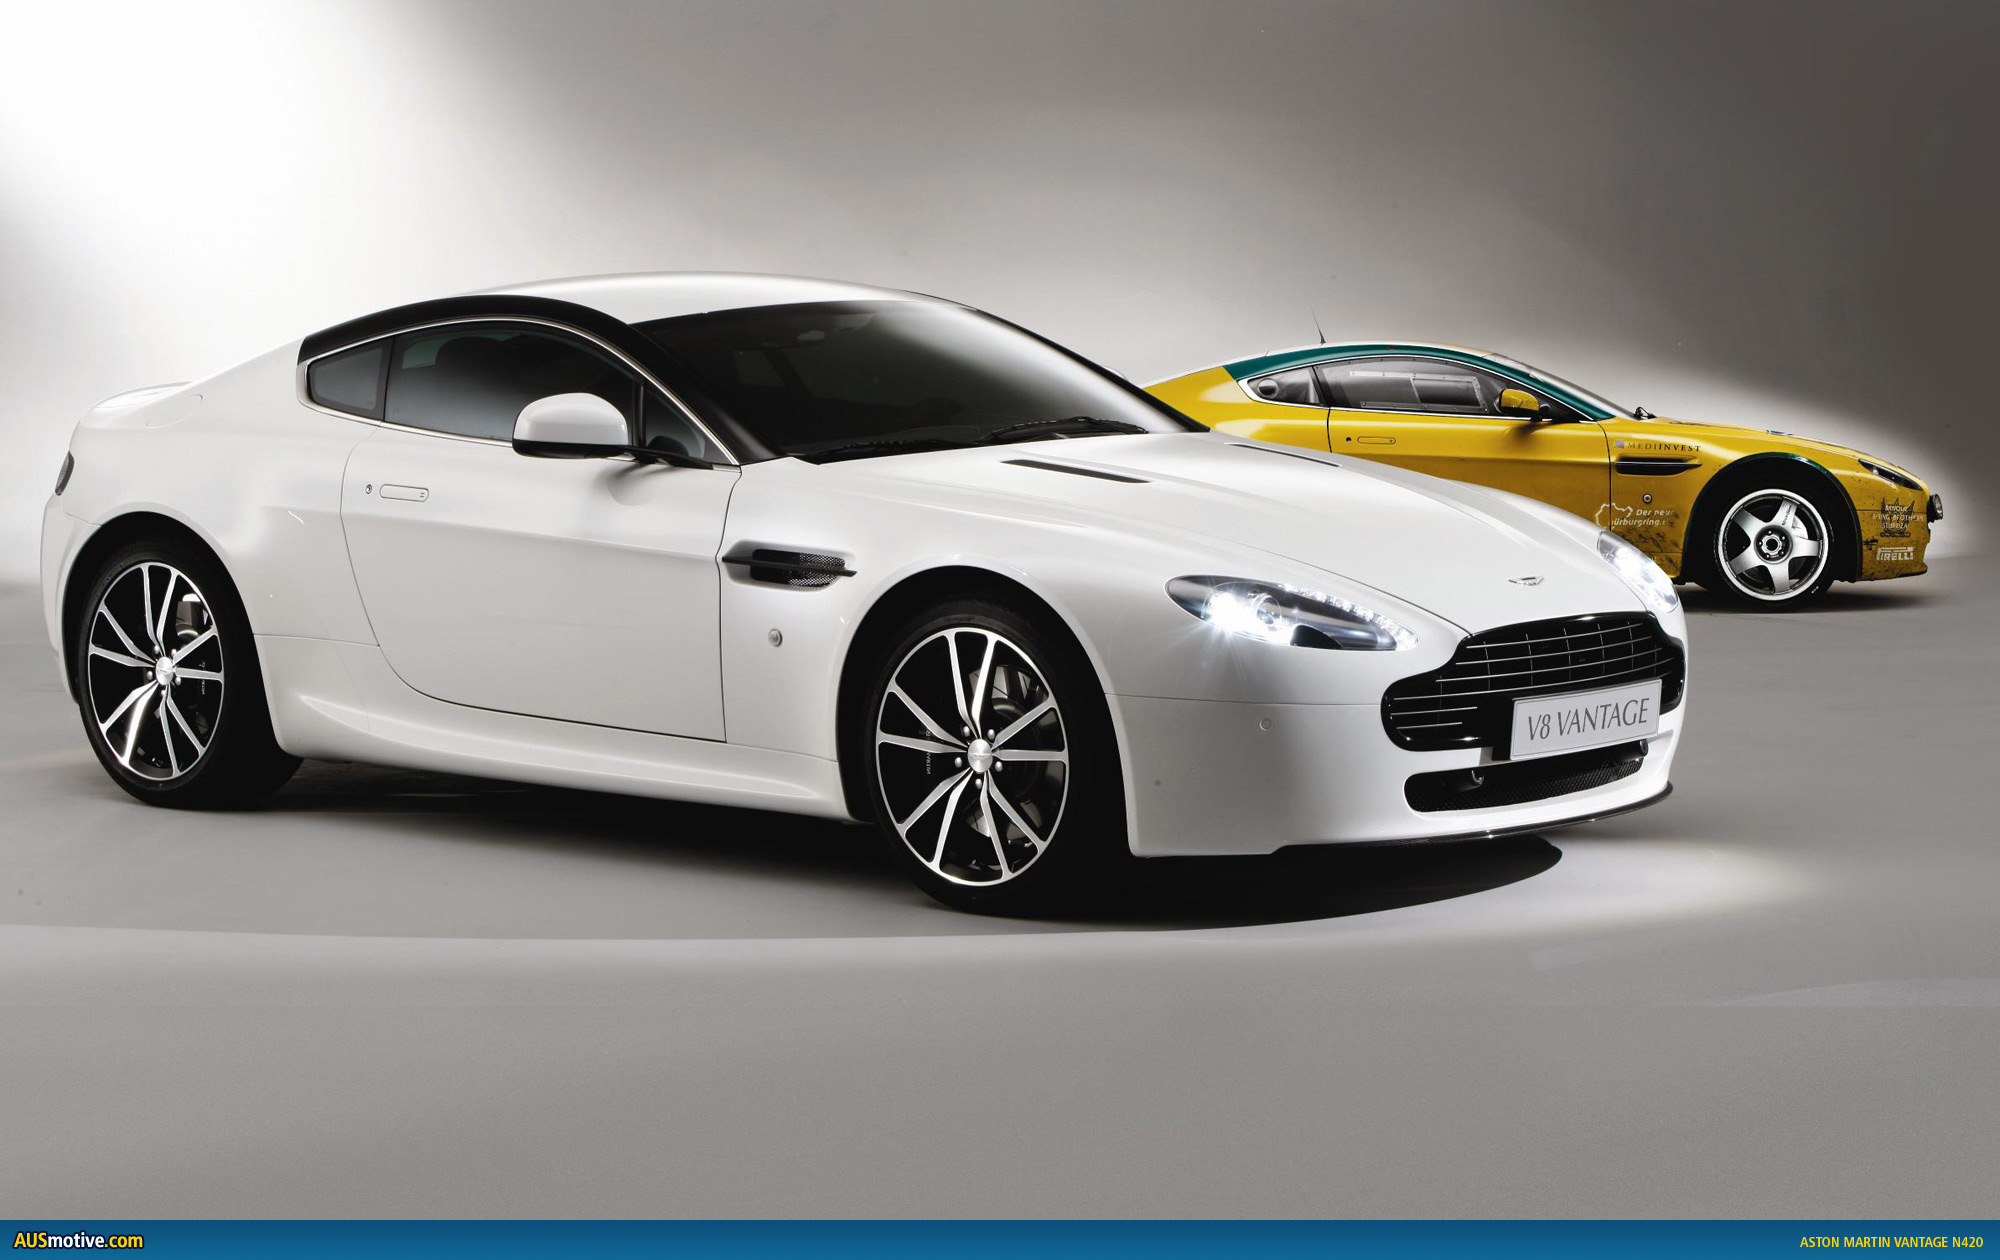 aston martin v8 vantage n420. Black Bedroom Furniture Sets. Home Design Ideas